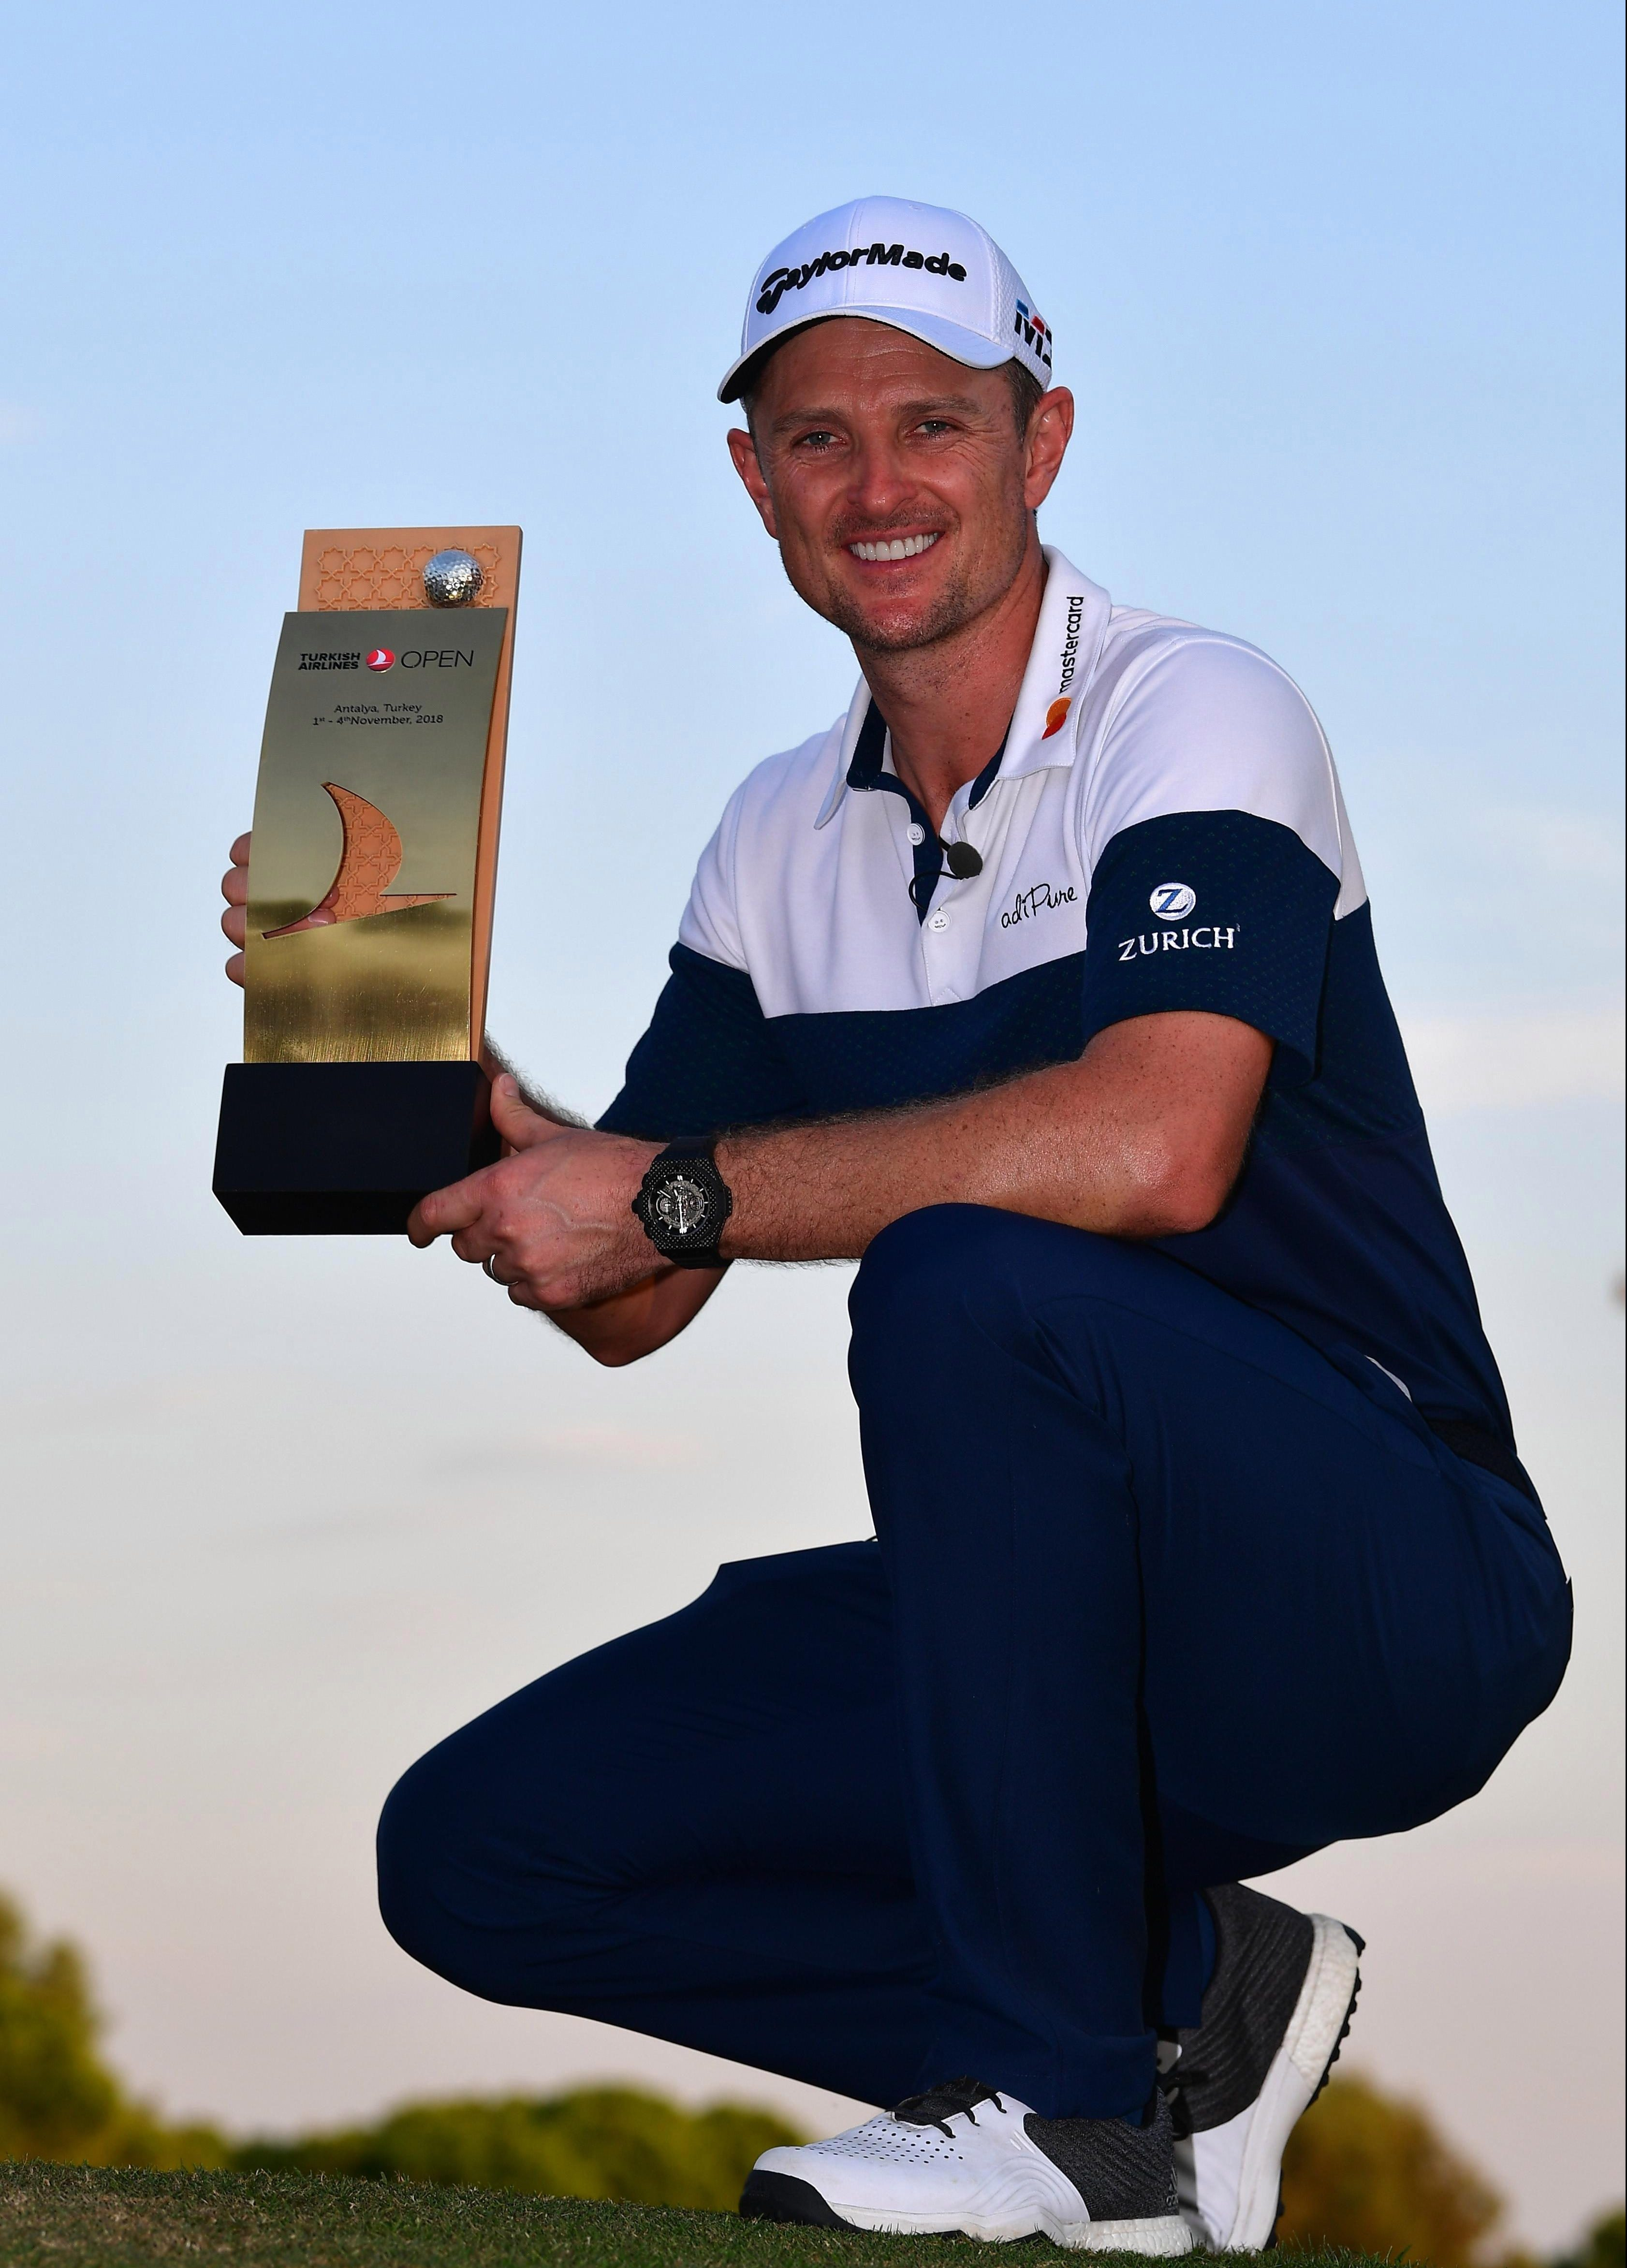 Justin Rose became world number one after his win in Turkey